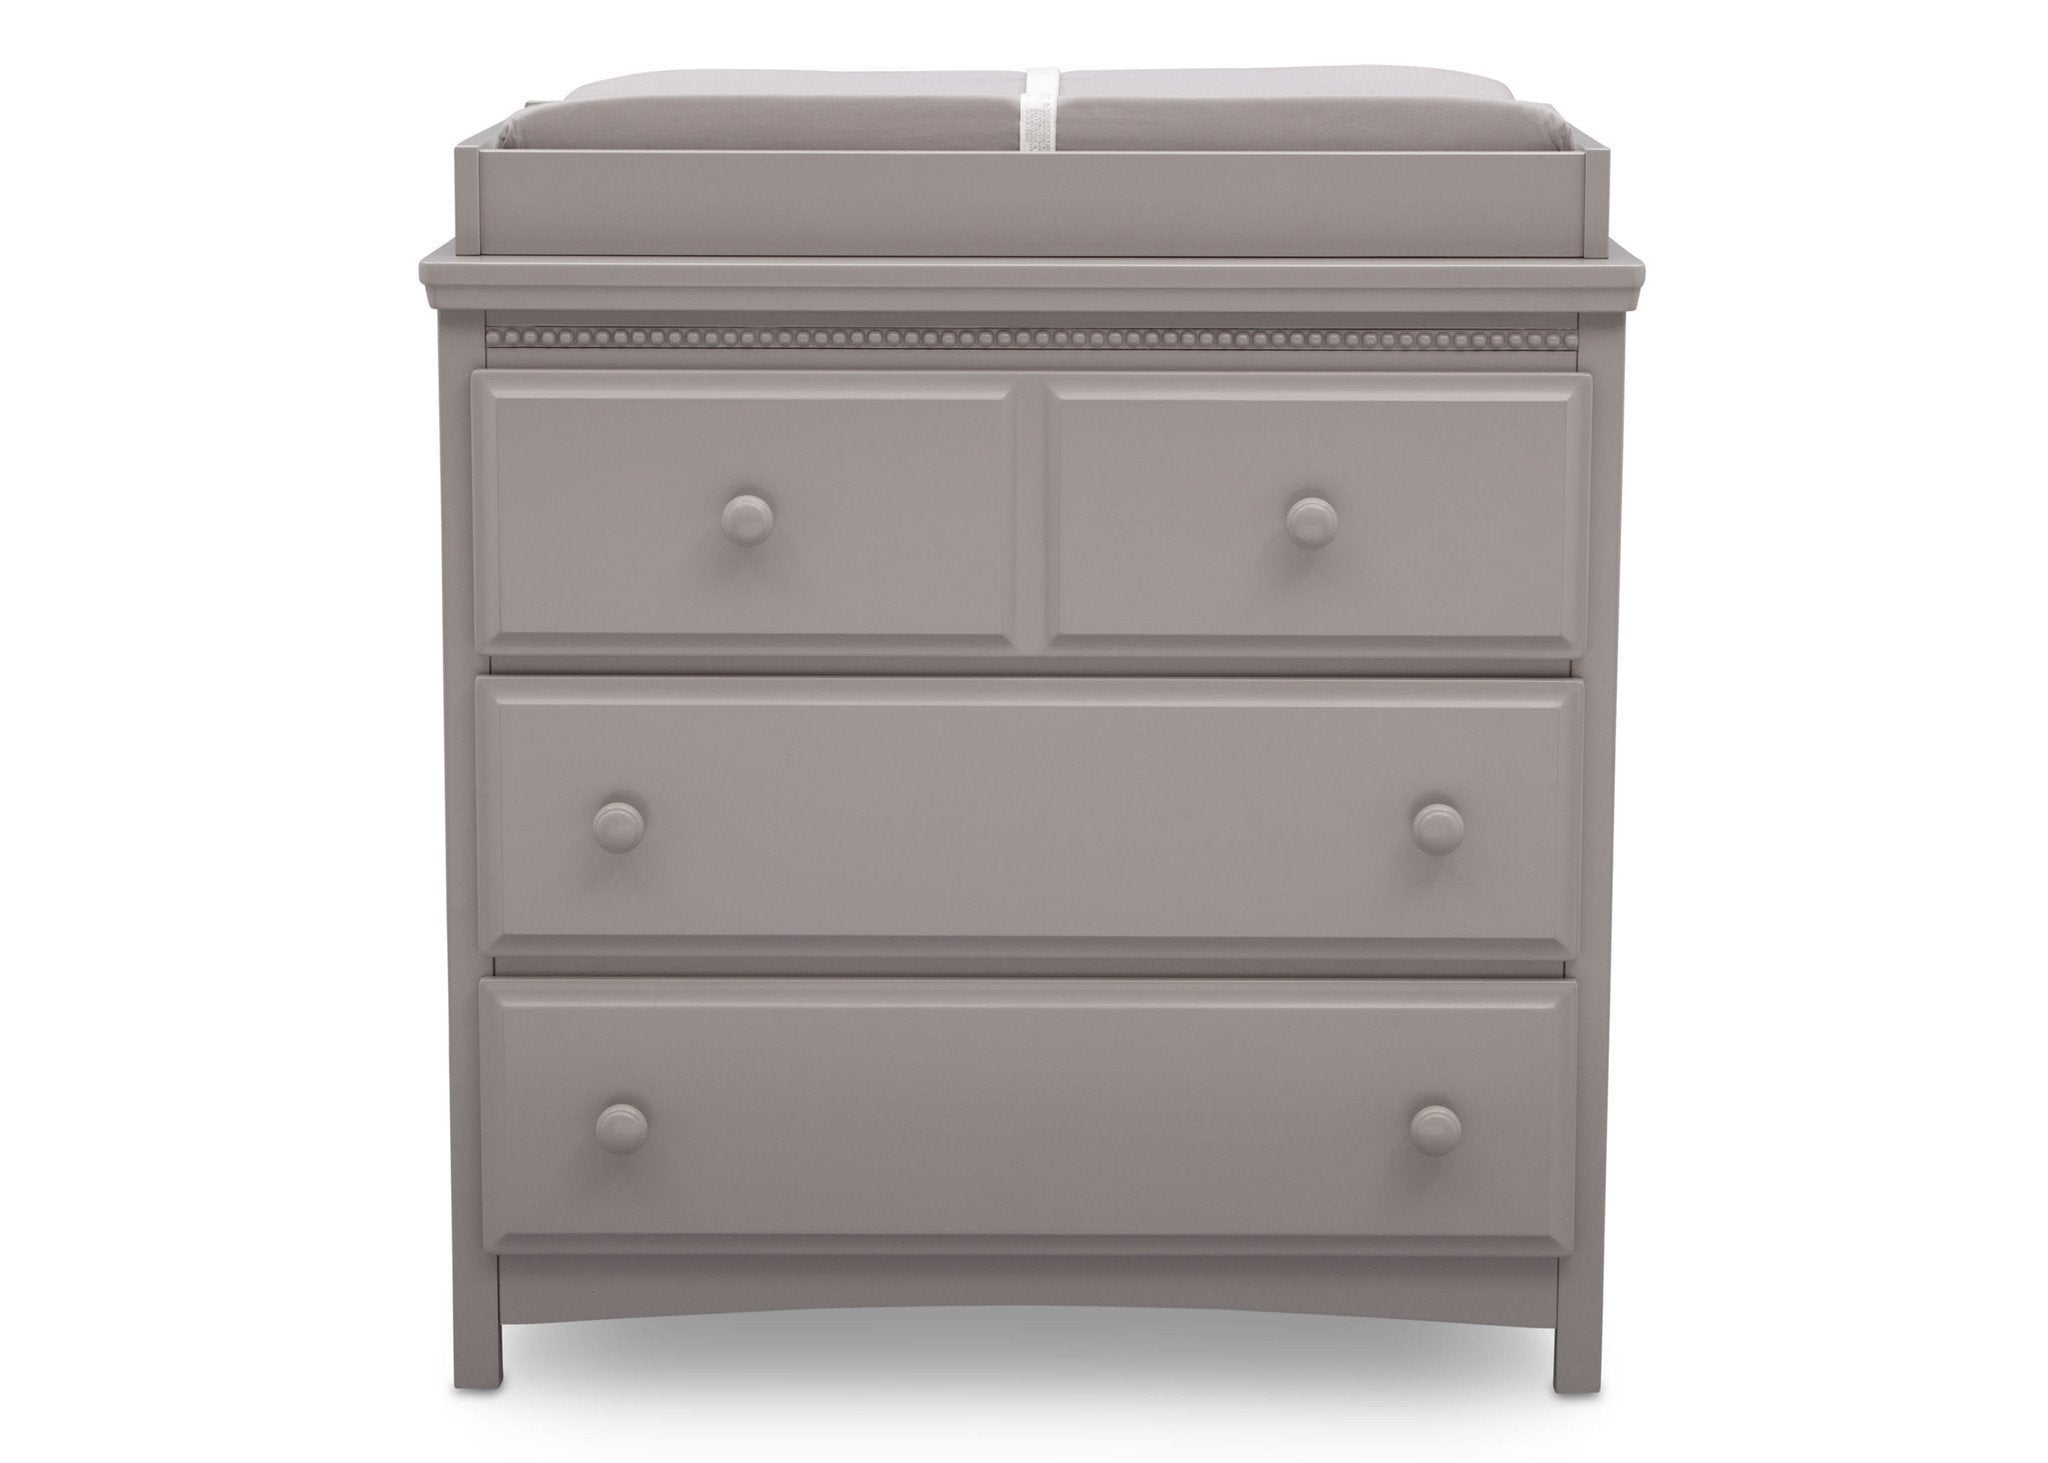 Delta Children Grey (026) Emerson 3 Drawer Dresser with Changing Top, Front View a2a